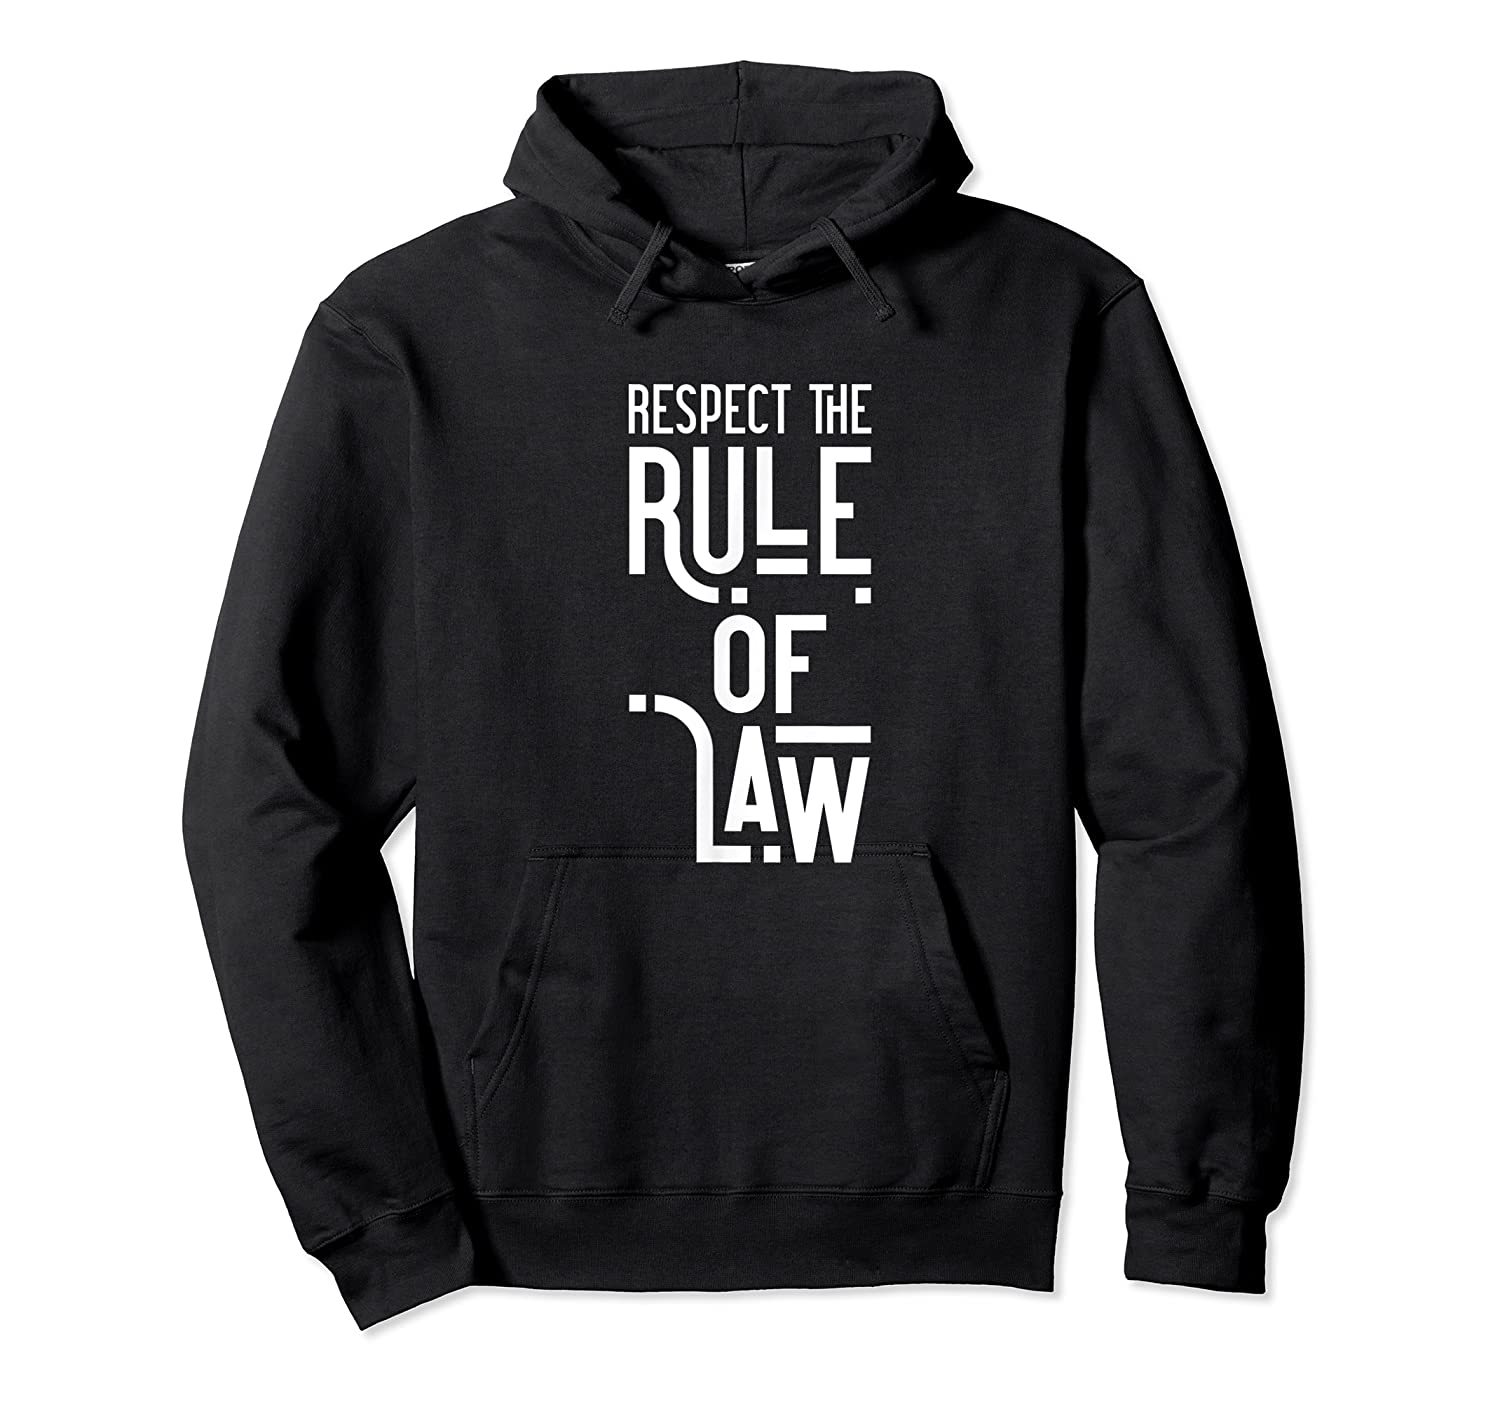 Respect The Rule Of Law Anti Trump, Anti Barr Political Shirts Unisex Pullover Hoodie